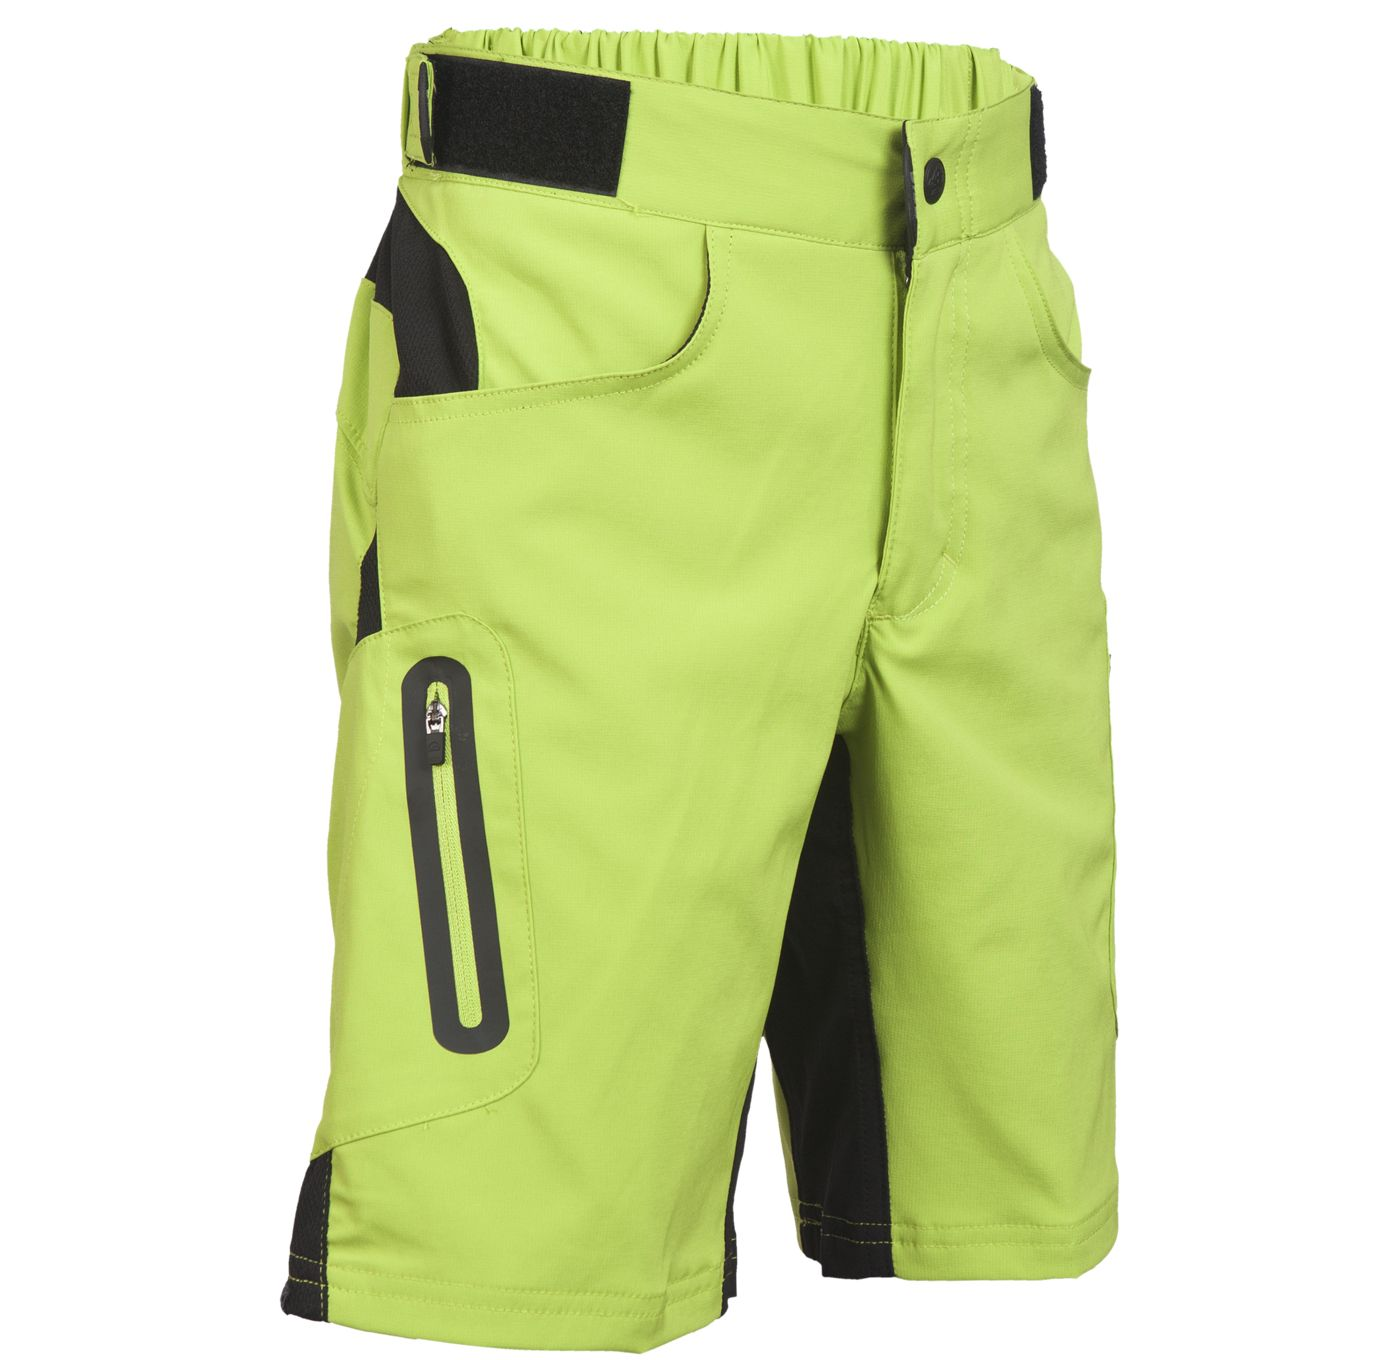 ZOIC Boys' Ether Jr. Cycling Shorts